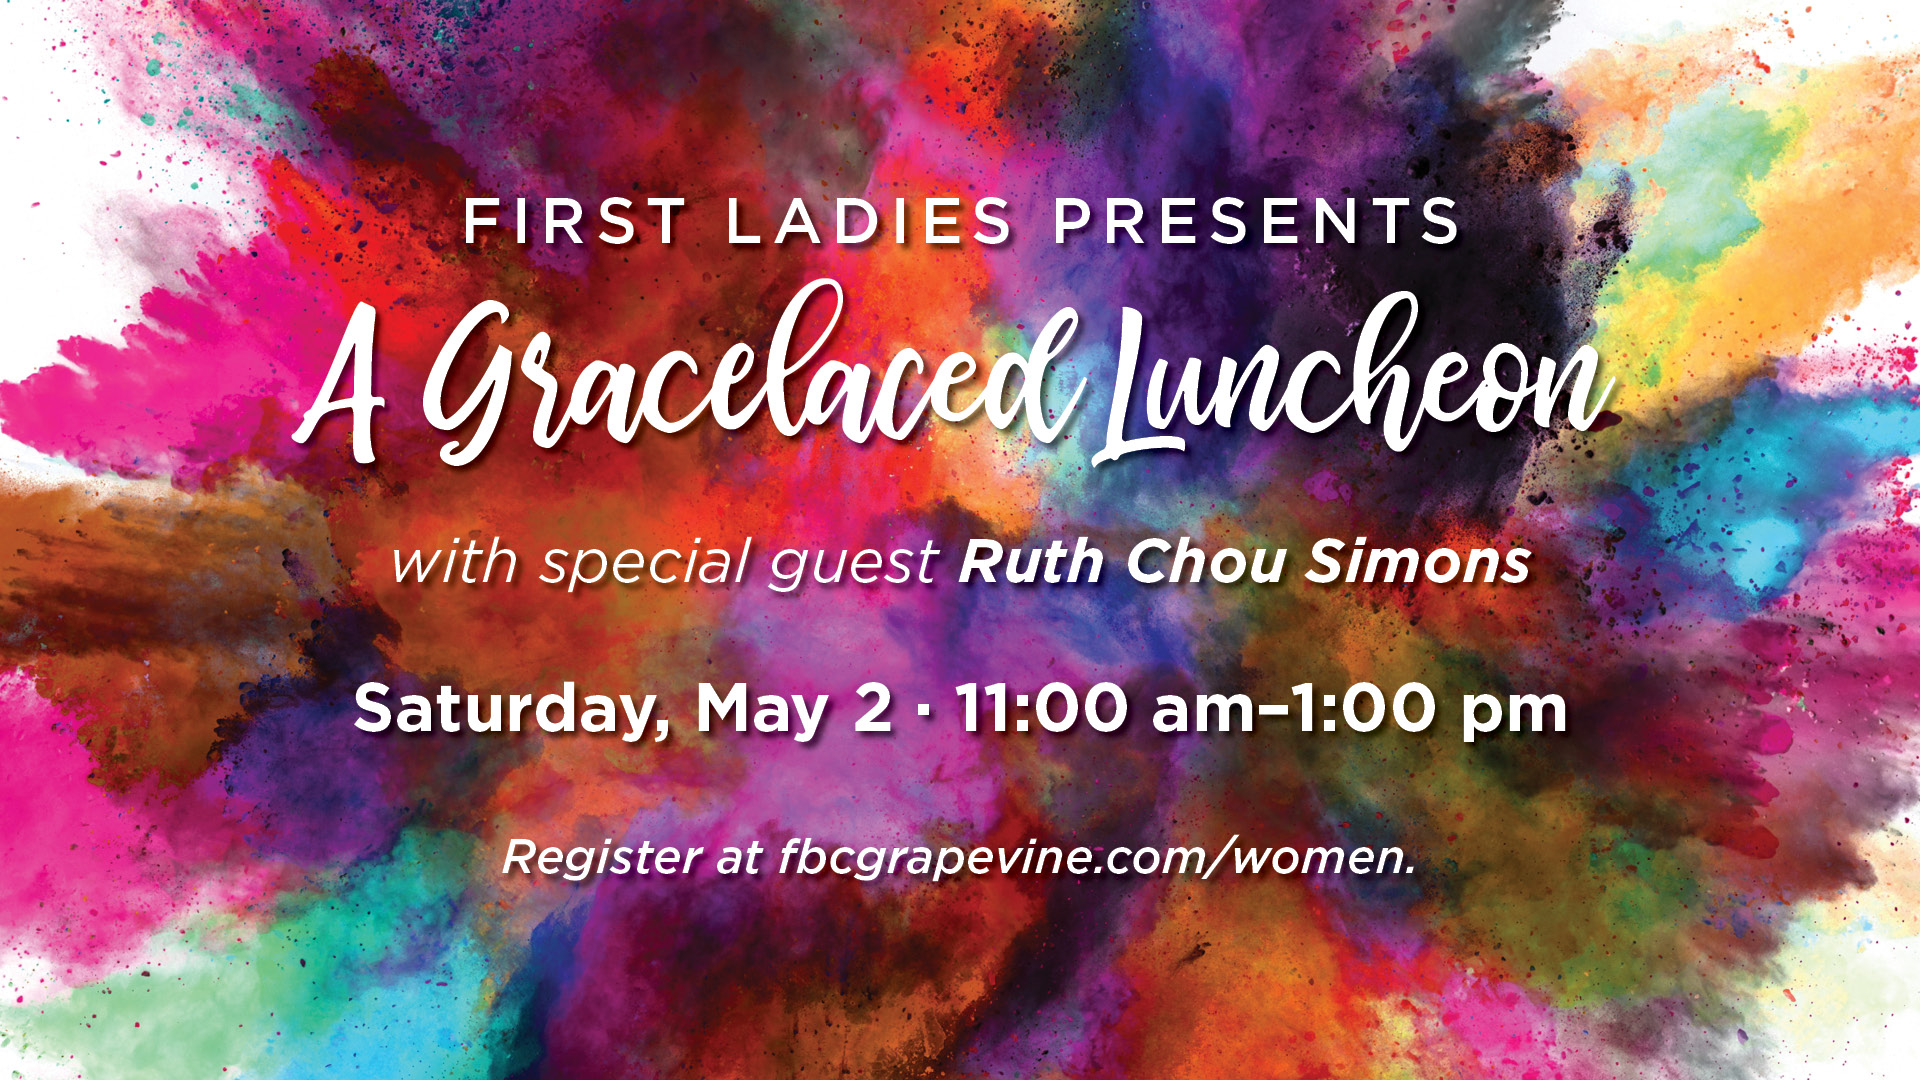 202002 First Ladies Gracelaced Luncheon Promo Video Graphic 1920x1080